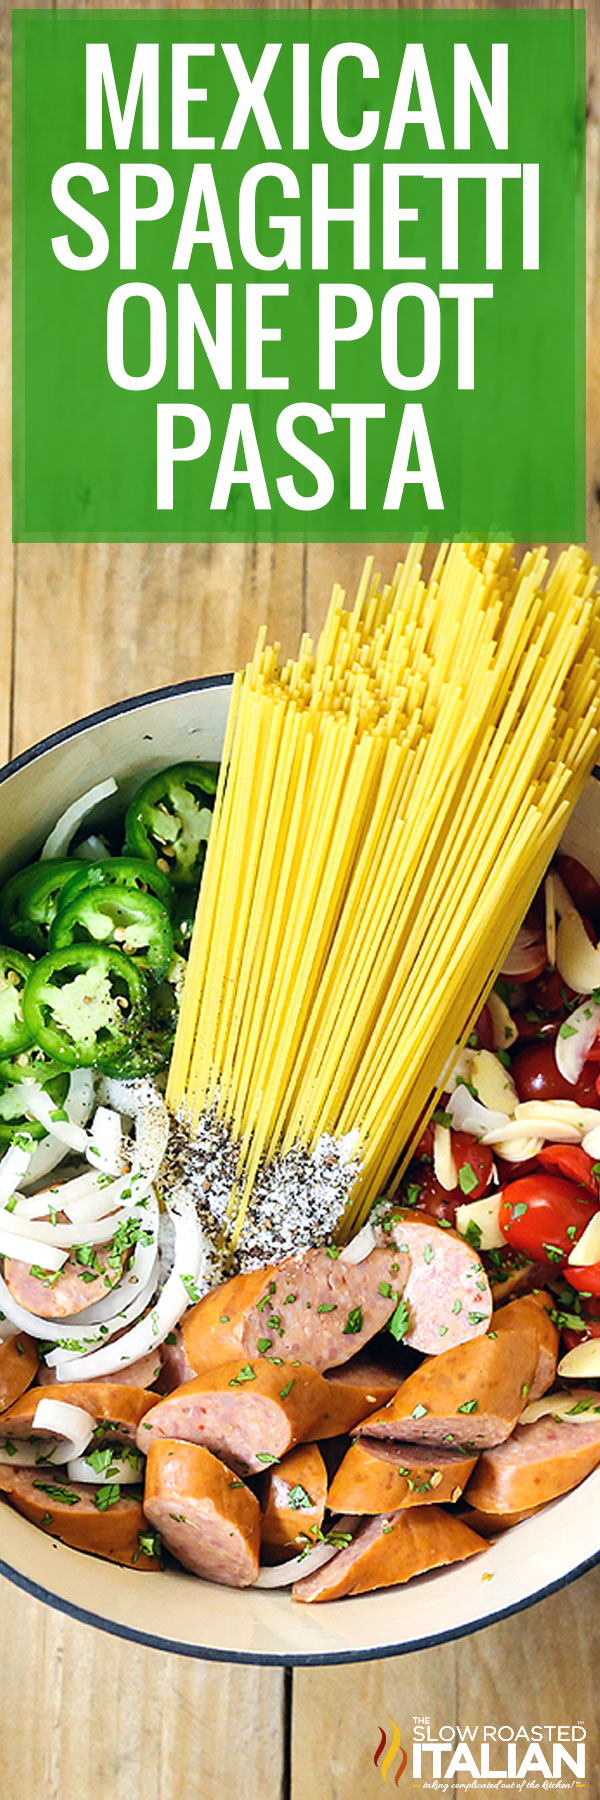 Title Text (pictured in a pot): Mexican Spaghetti One Pot Pasta